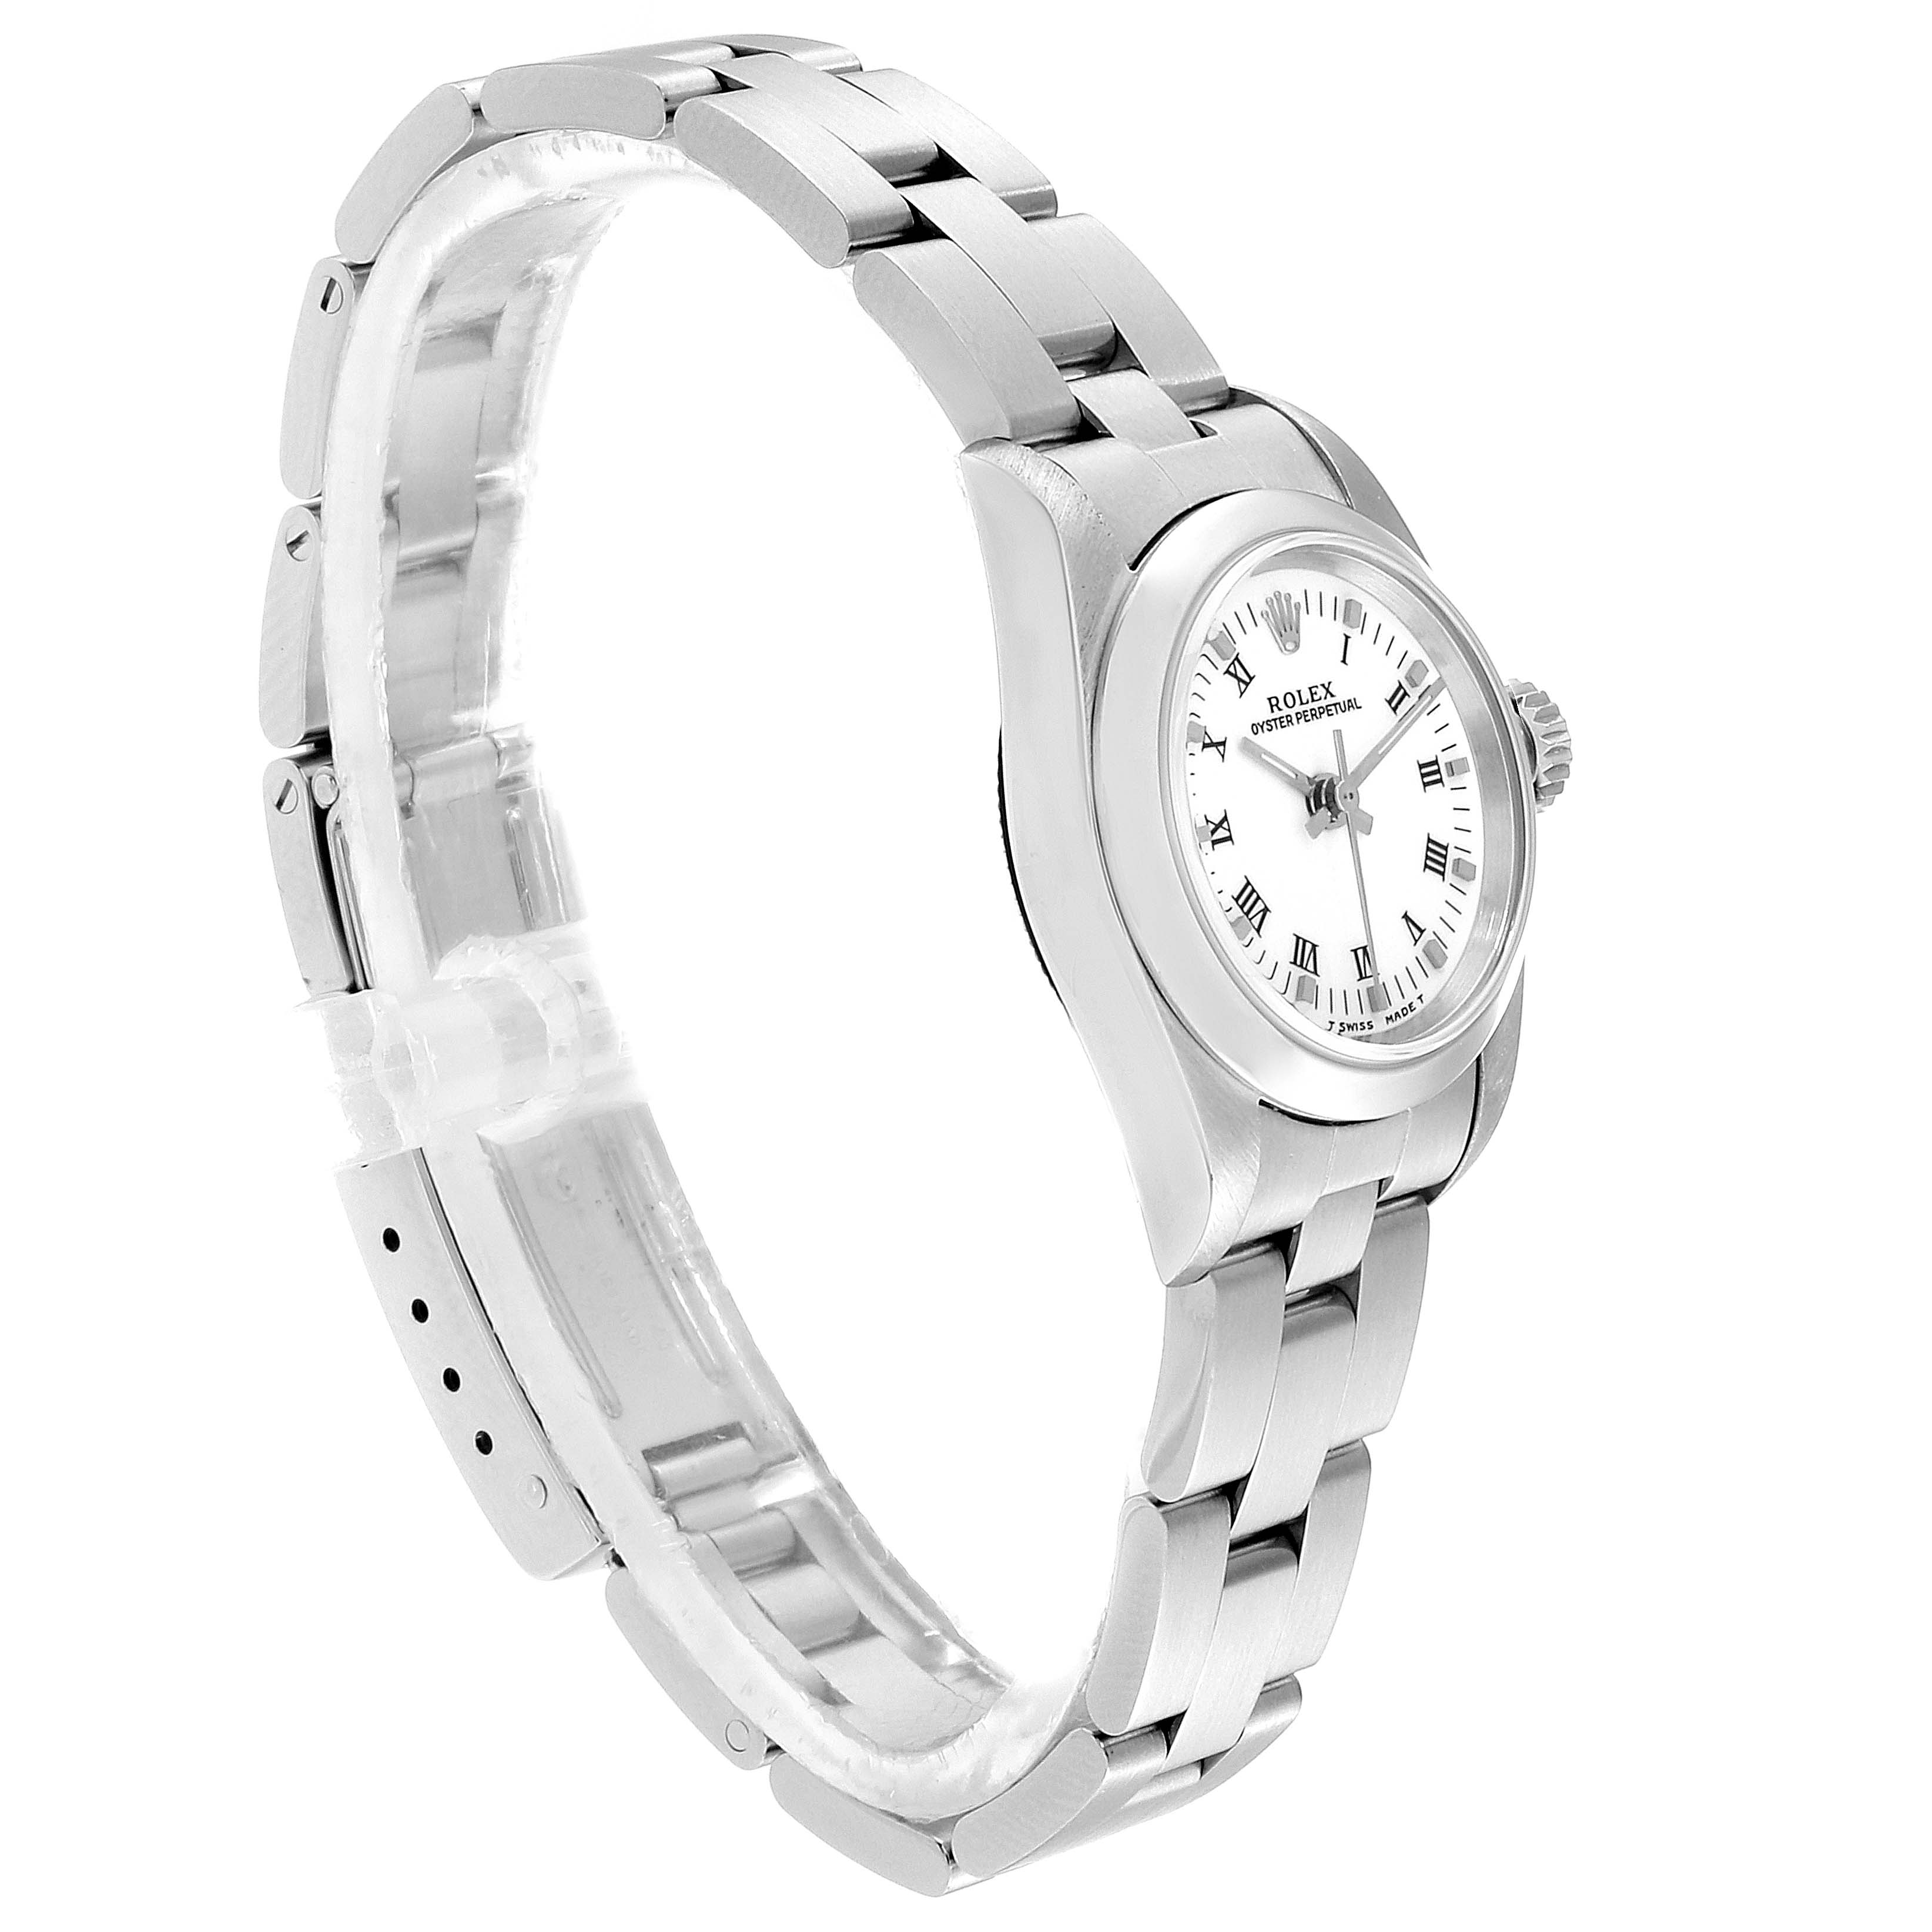 Rolex Oyster Perpetual Nondate White Dial Steel Ladies Watch 67180 SwissWatchExpo